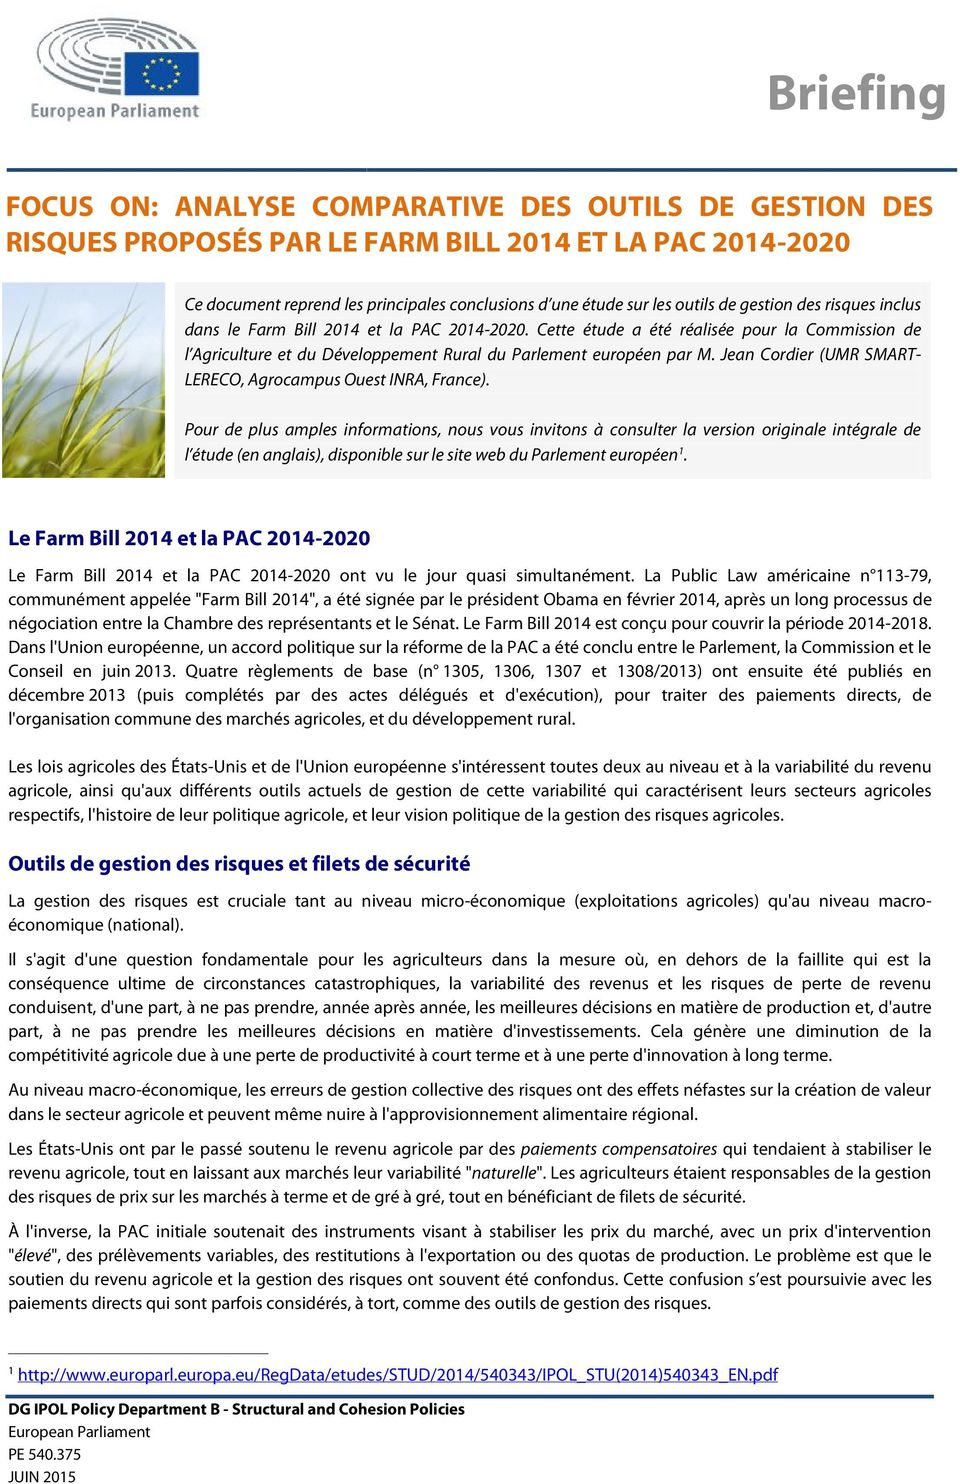 Jean Cordier (UMR SMART- LERECO, Agrocampus Ouest INRA, France).